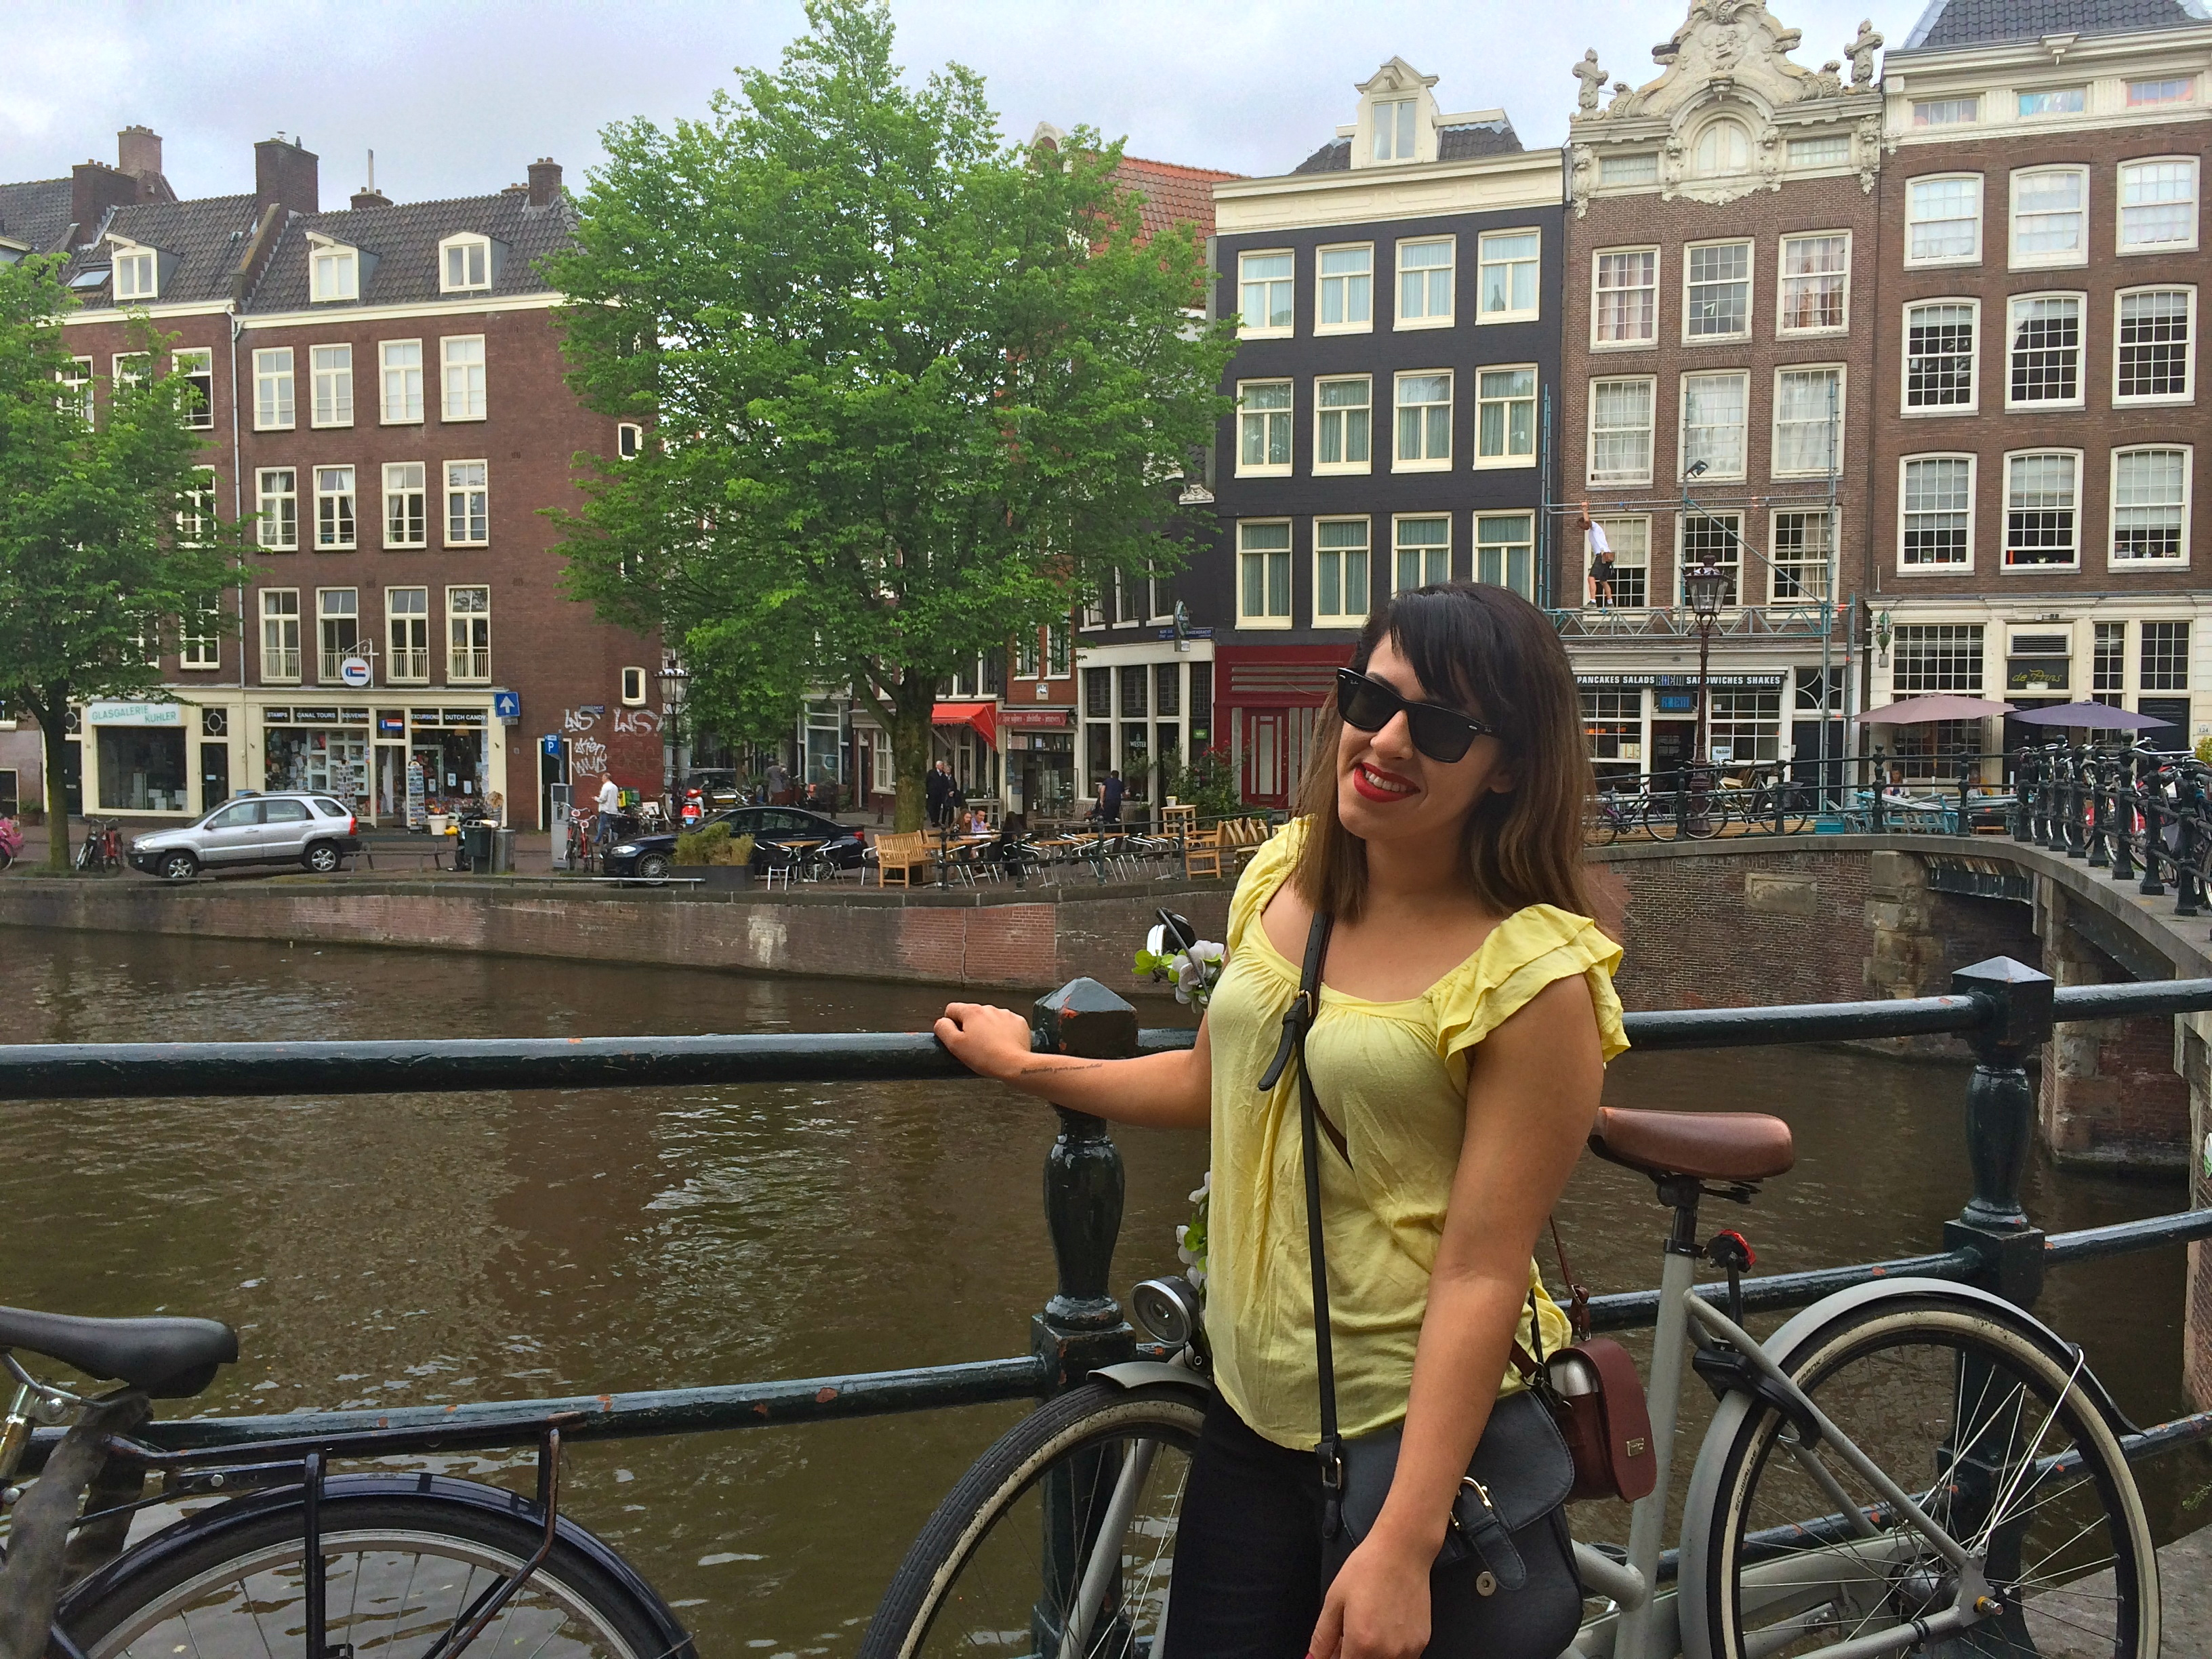 Sex and drugs in amsterdam